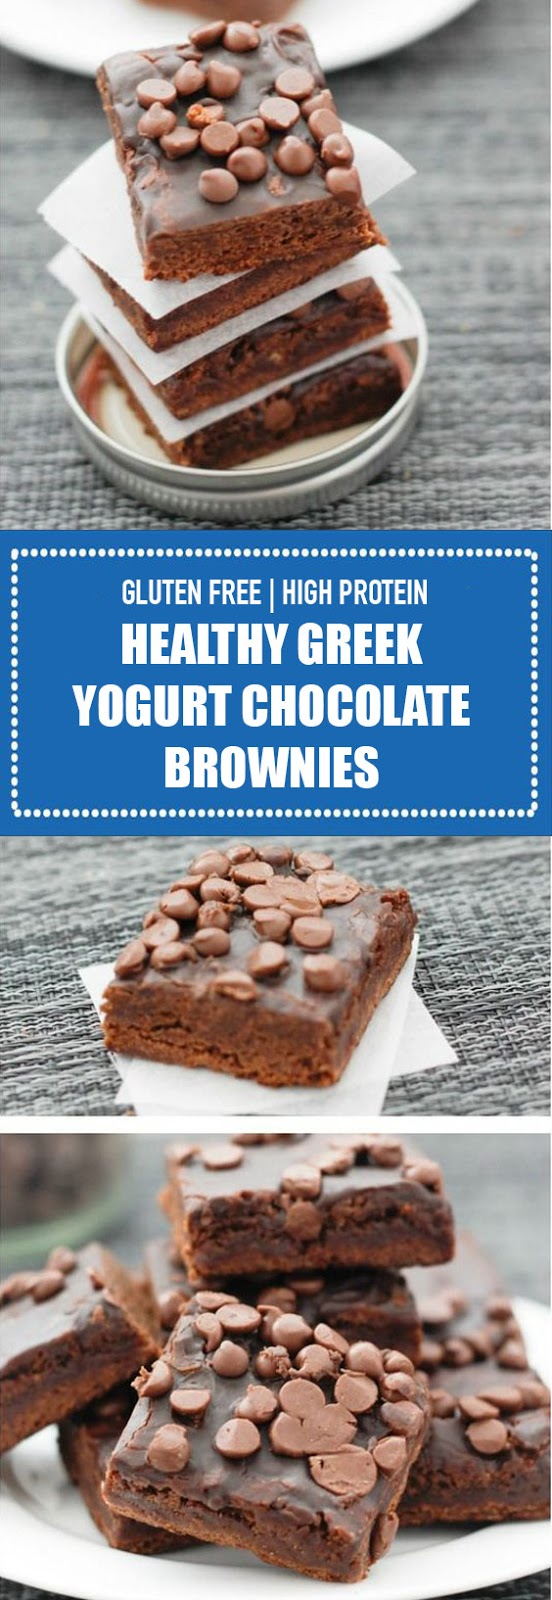 Greek Yogurt Chocolate Brownies